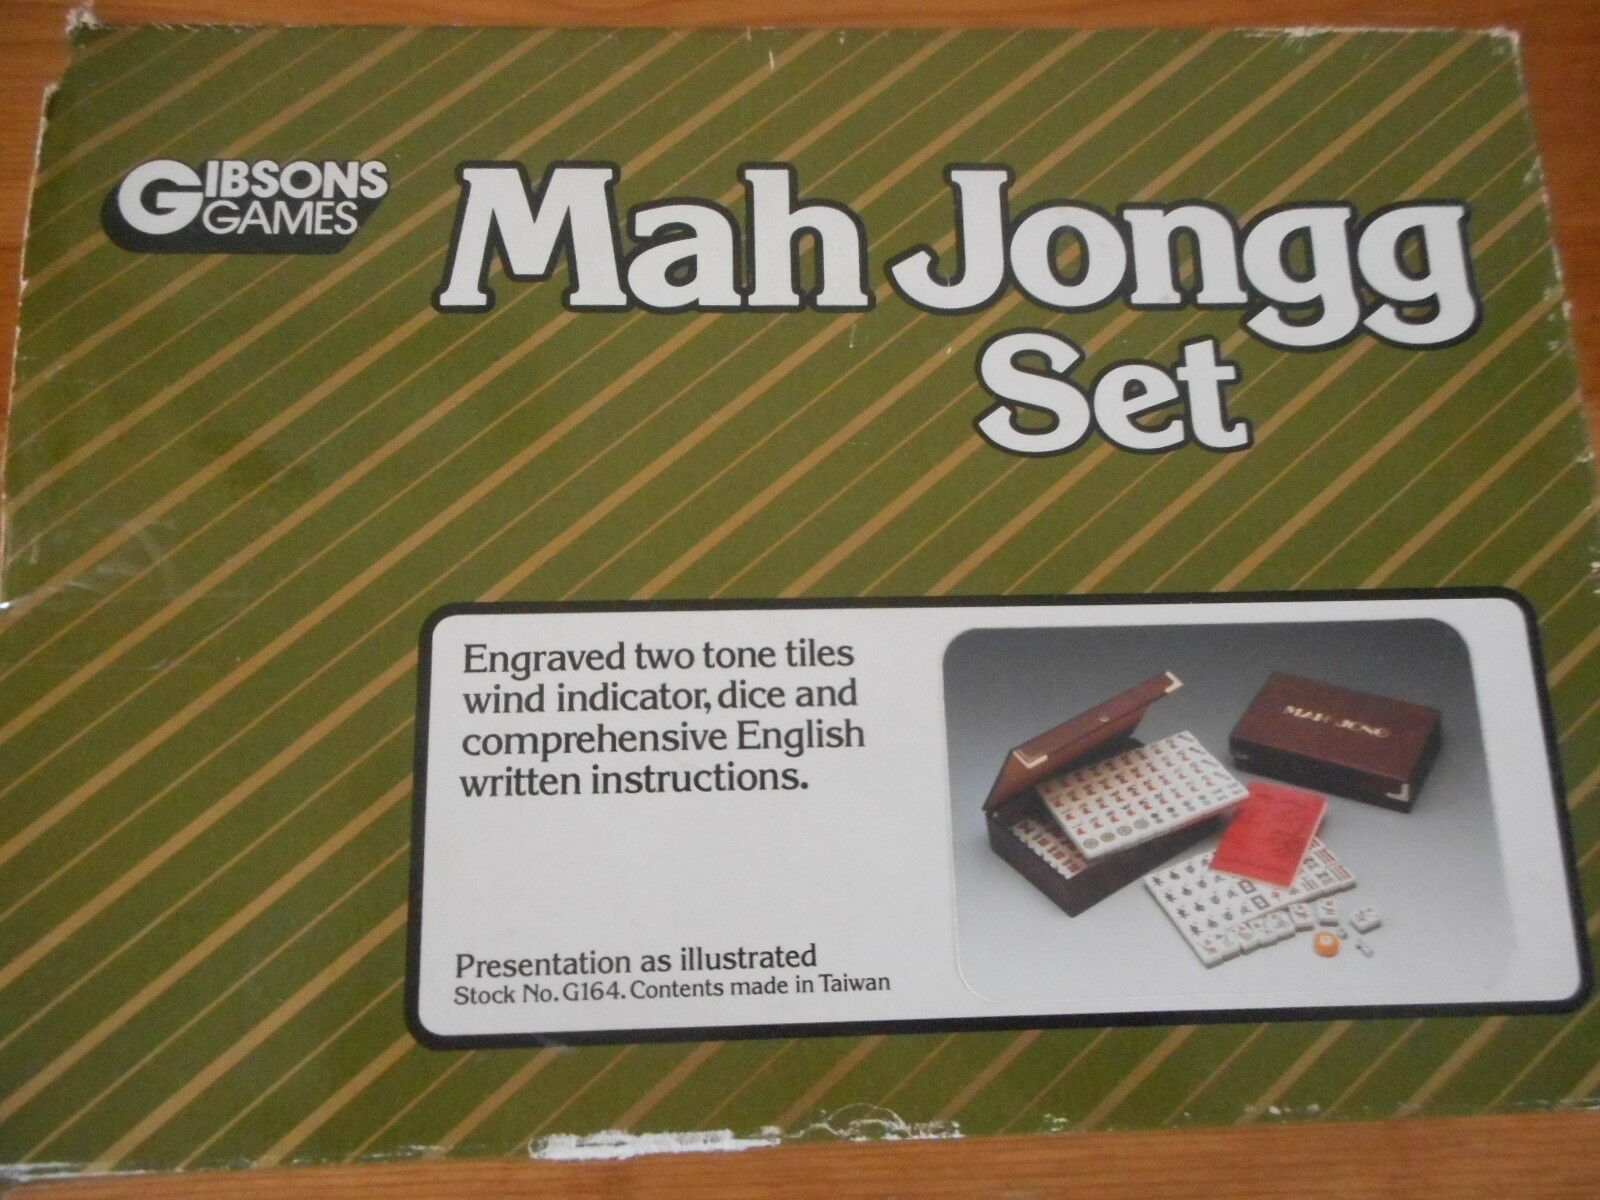 Vintage Mah Jongg Set by Gibsons Game Sealed Contents with Instructions